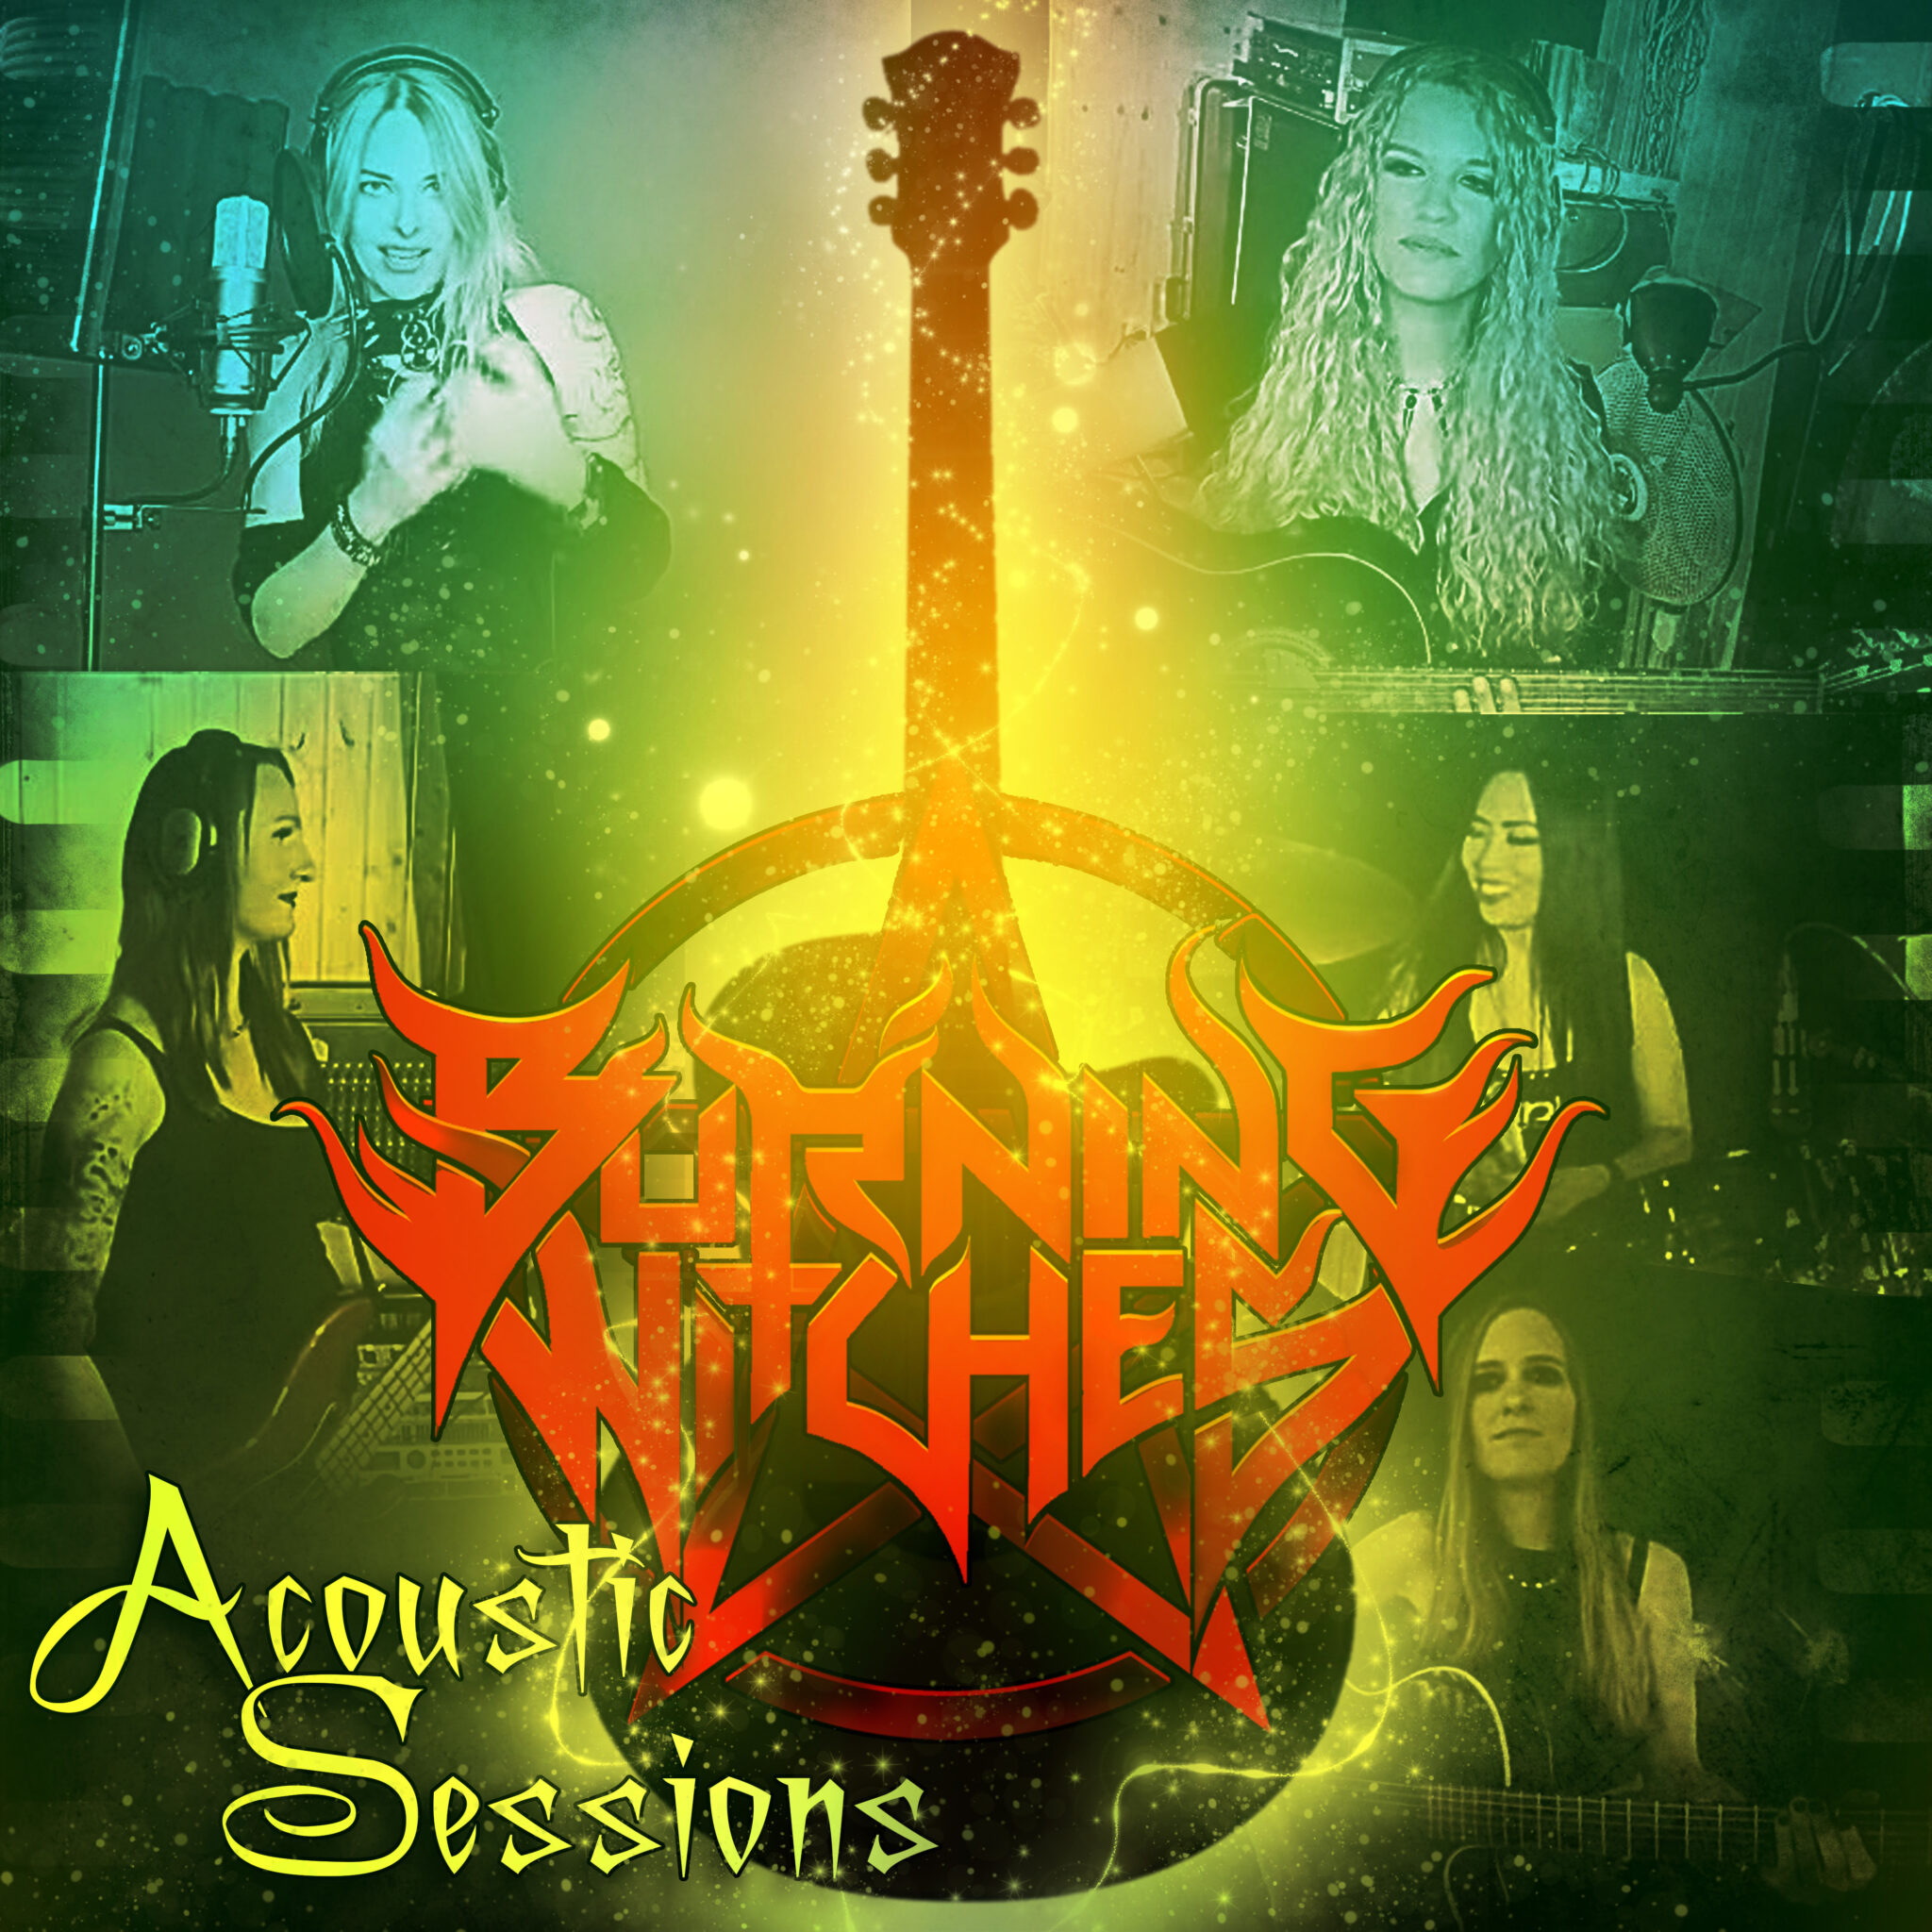 Burning Witches Release New Acoustic Session EP